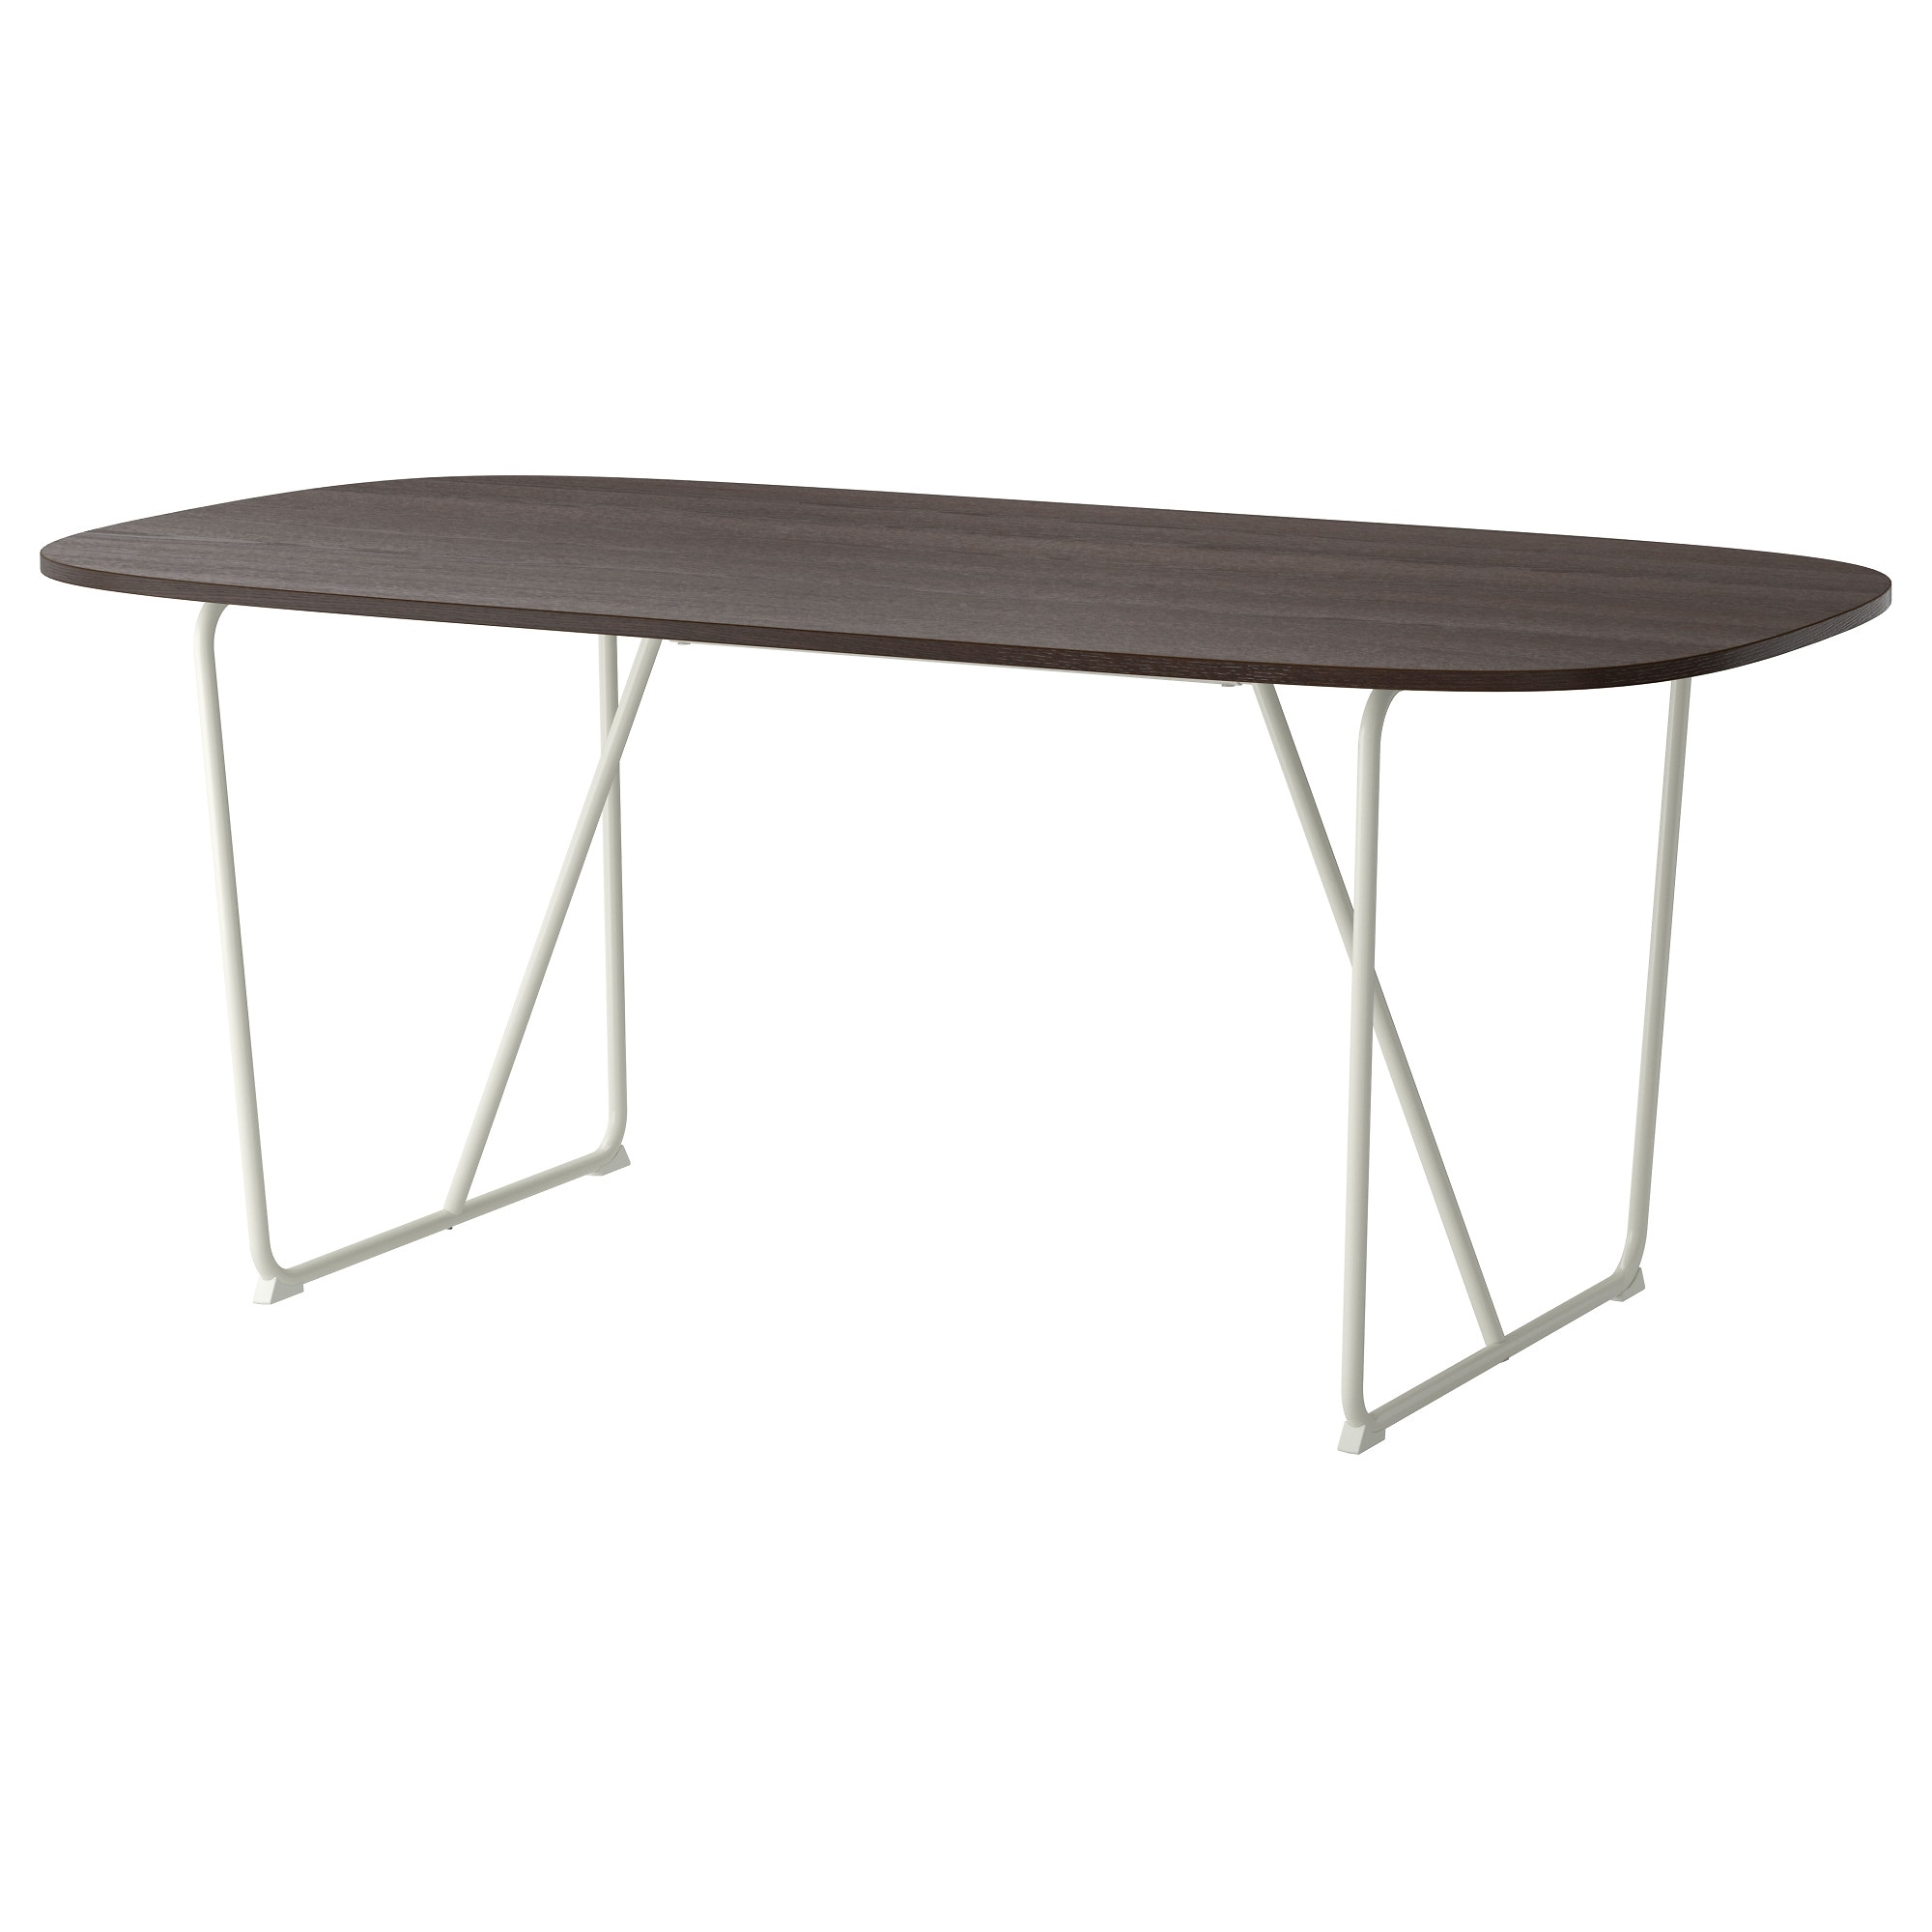 Ikea dining table white - Oppeby Table Dark Brown White Backaryd Dark Brown White Length 72 7